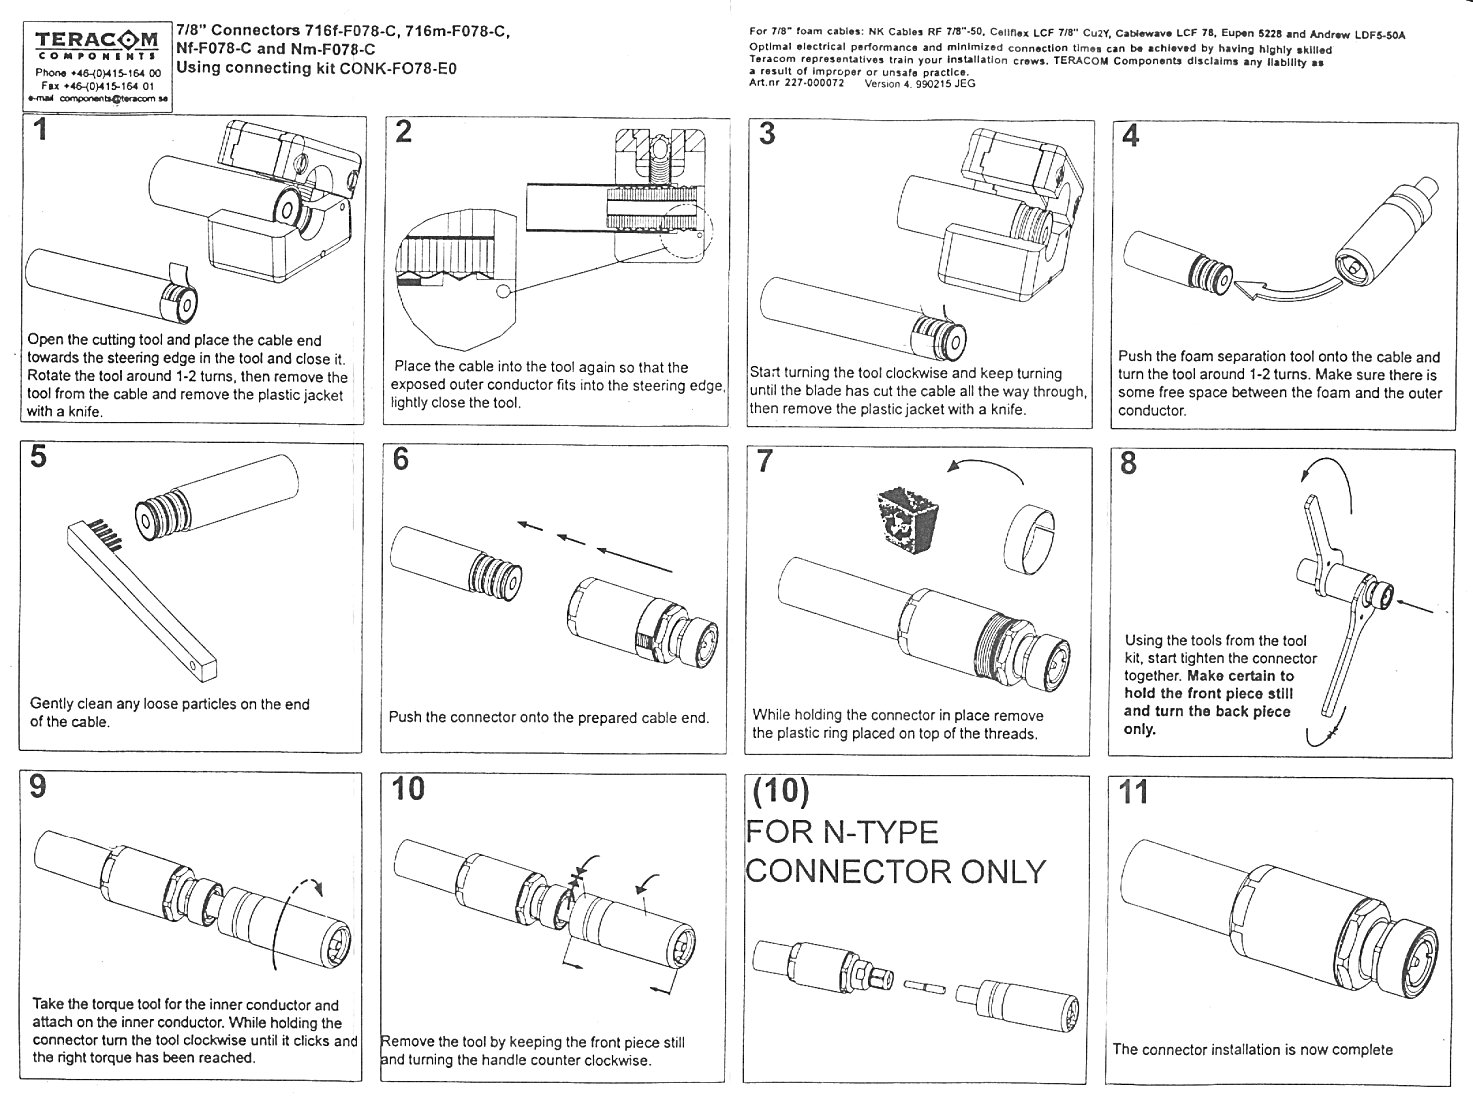 Cat 5 Cable Connectors Instructions